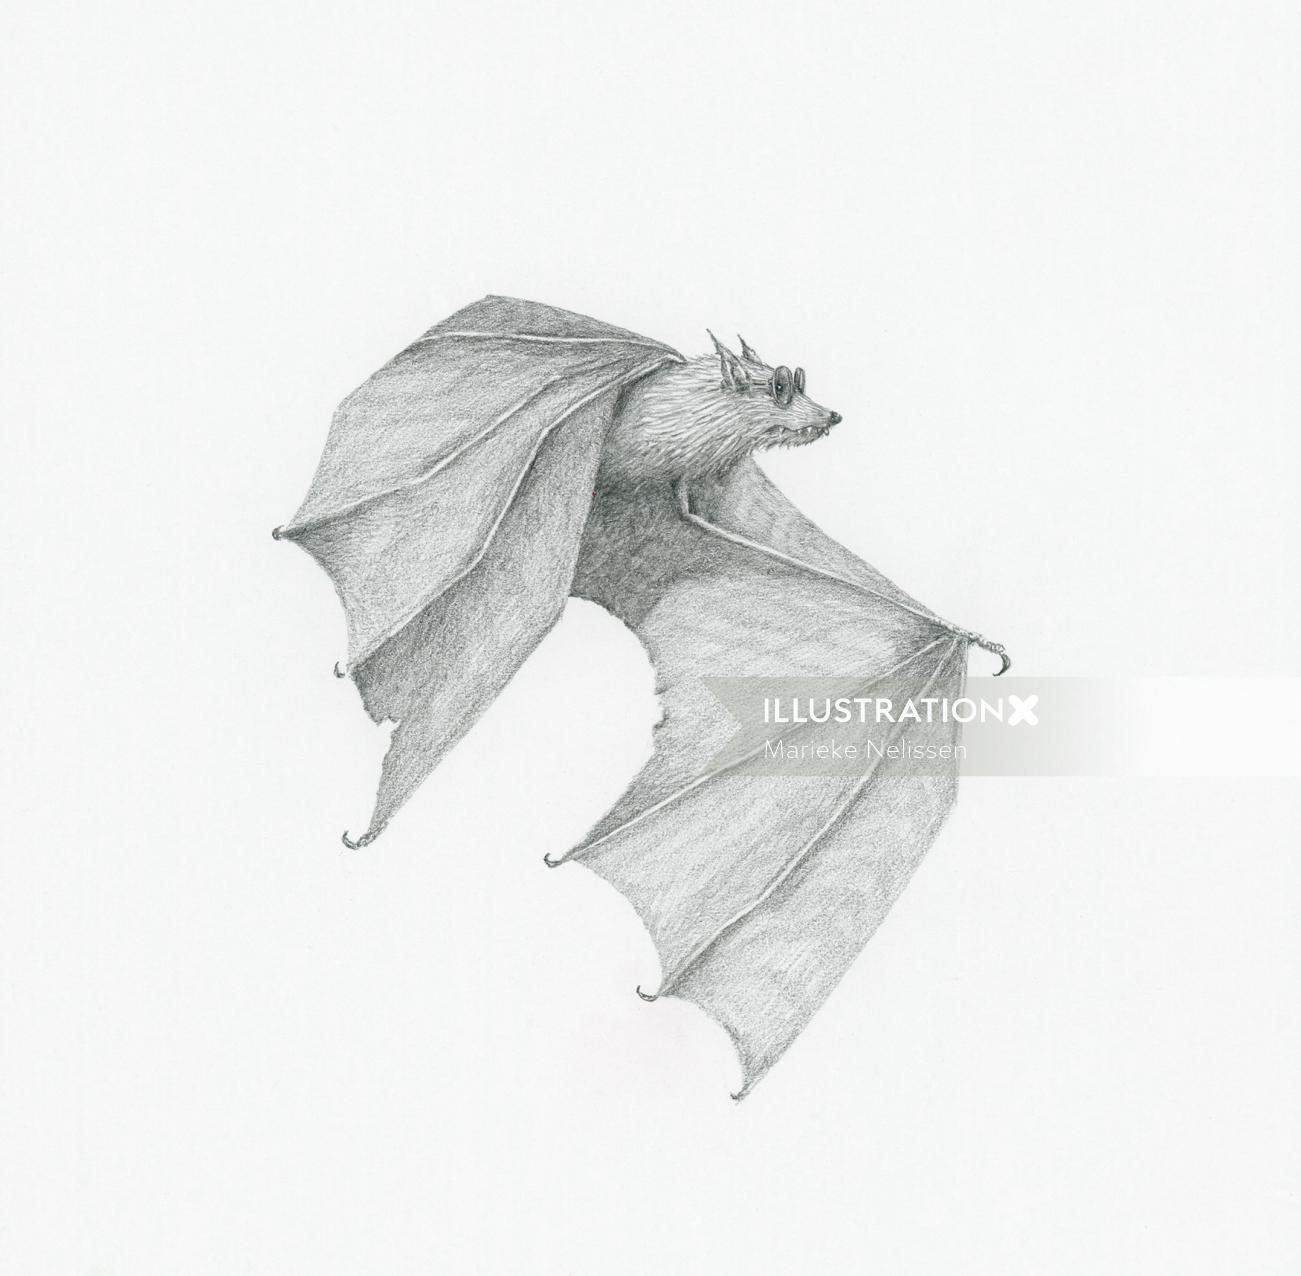 Bat wearing sunglasses artwork by Marieke Nelissen